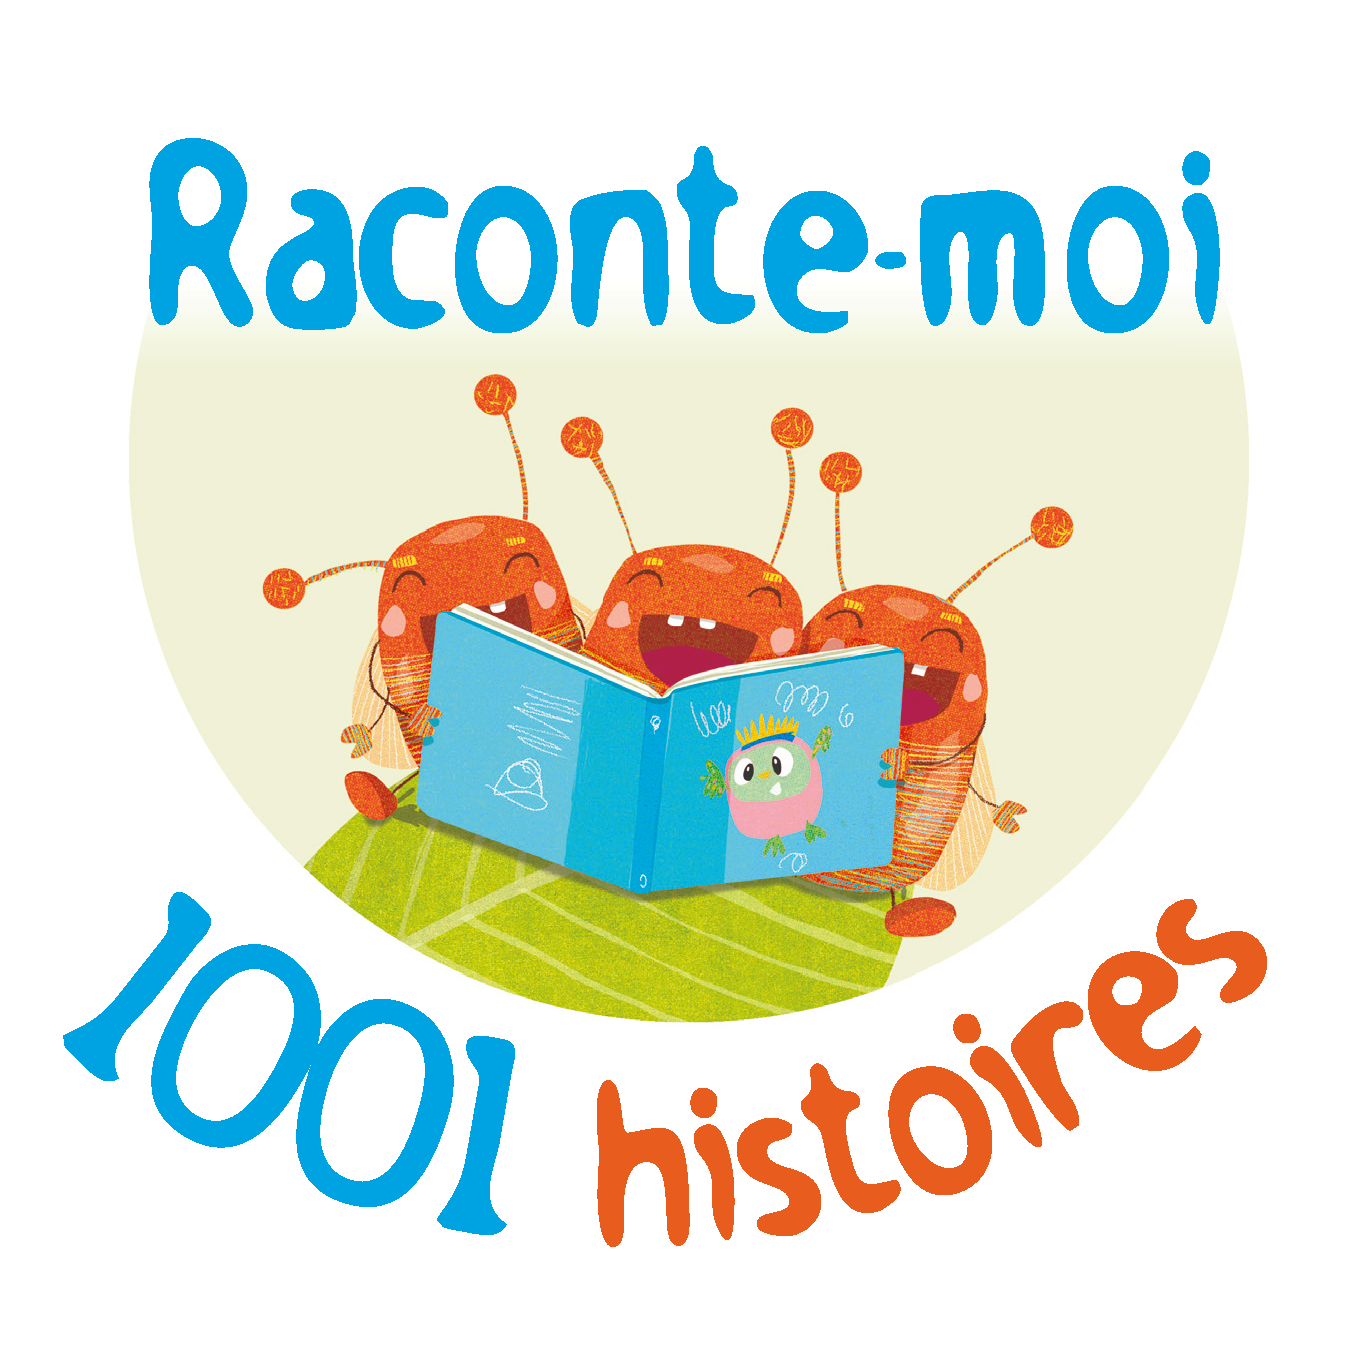 Raconte-moi.png (667 KB)